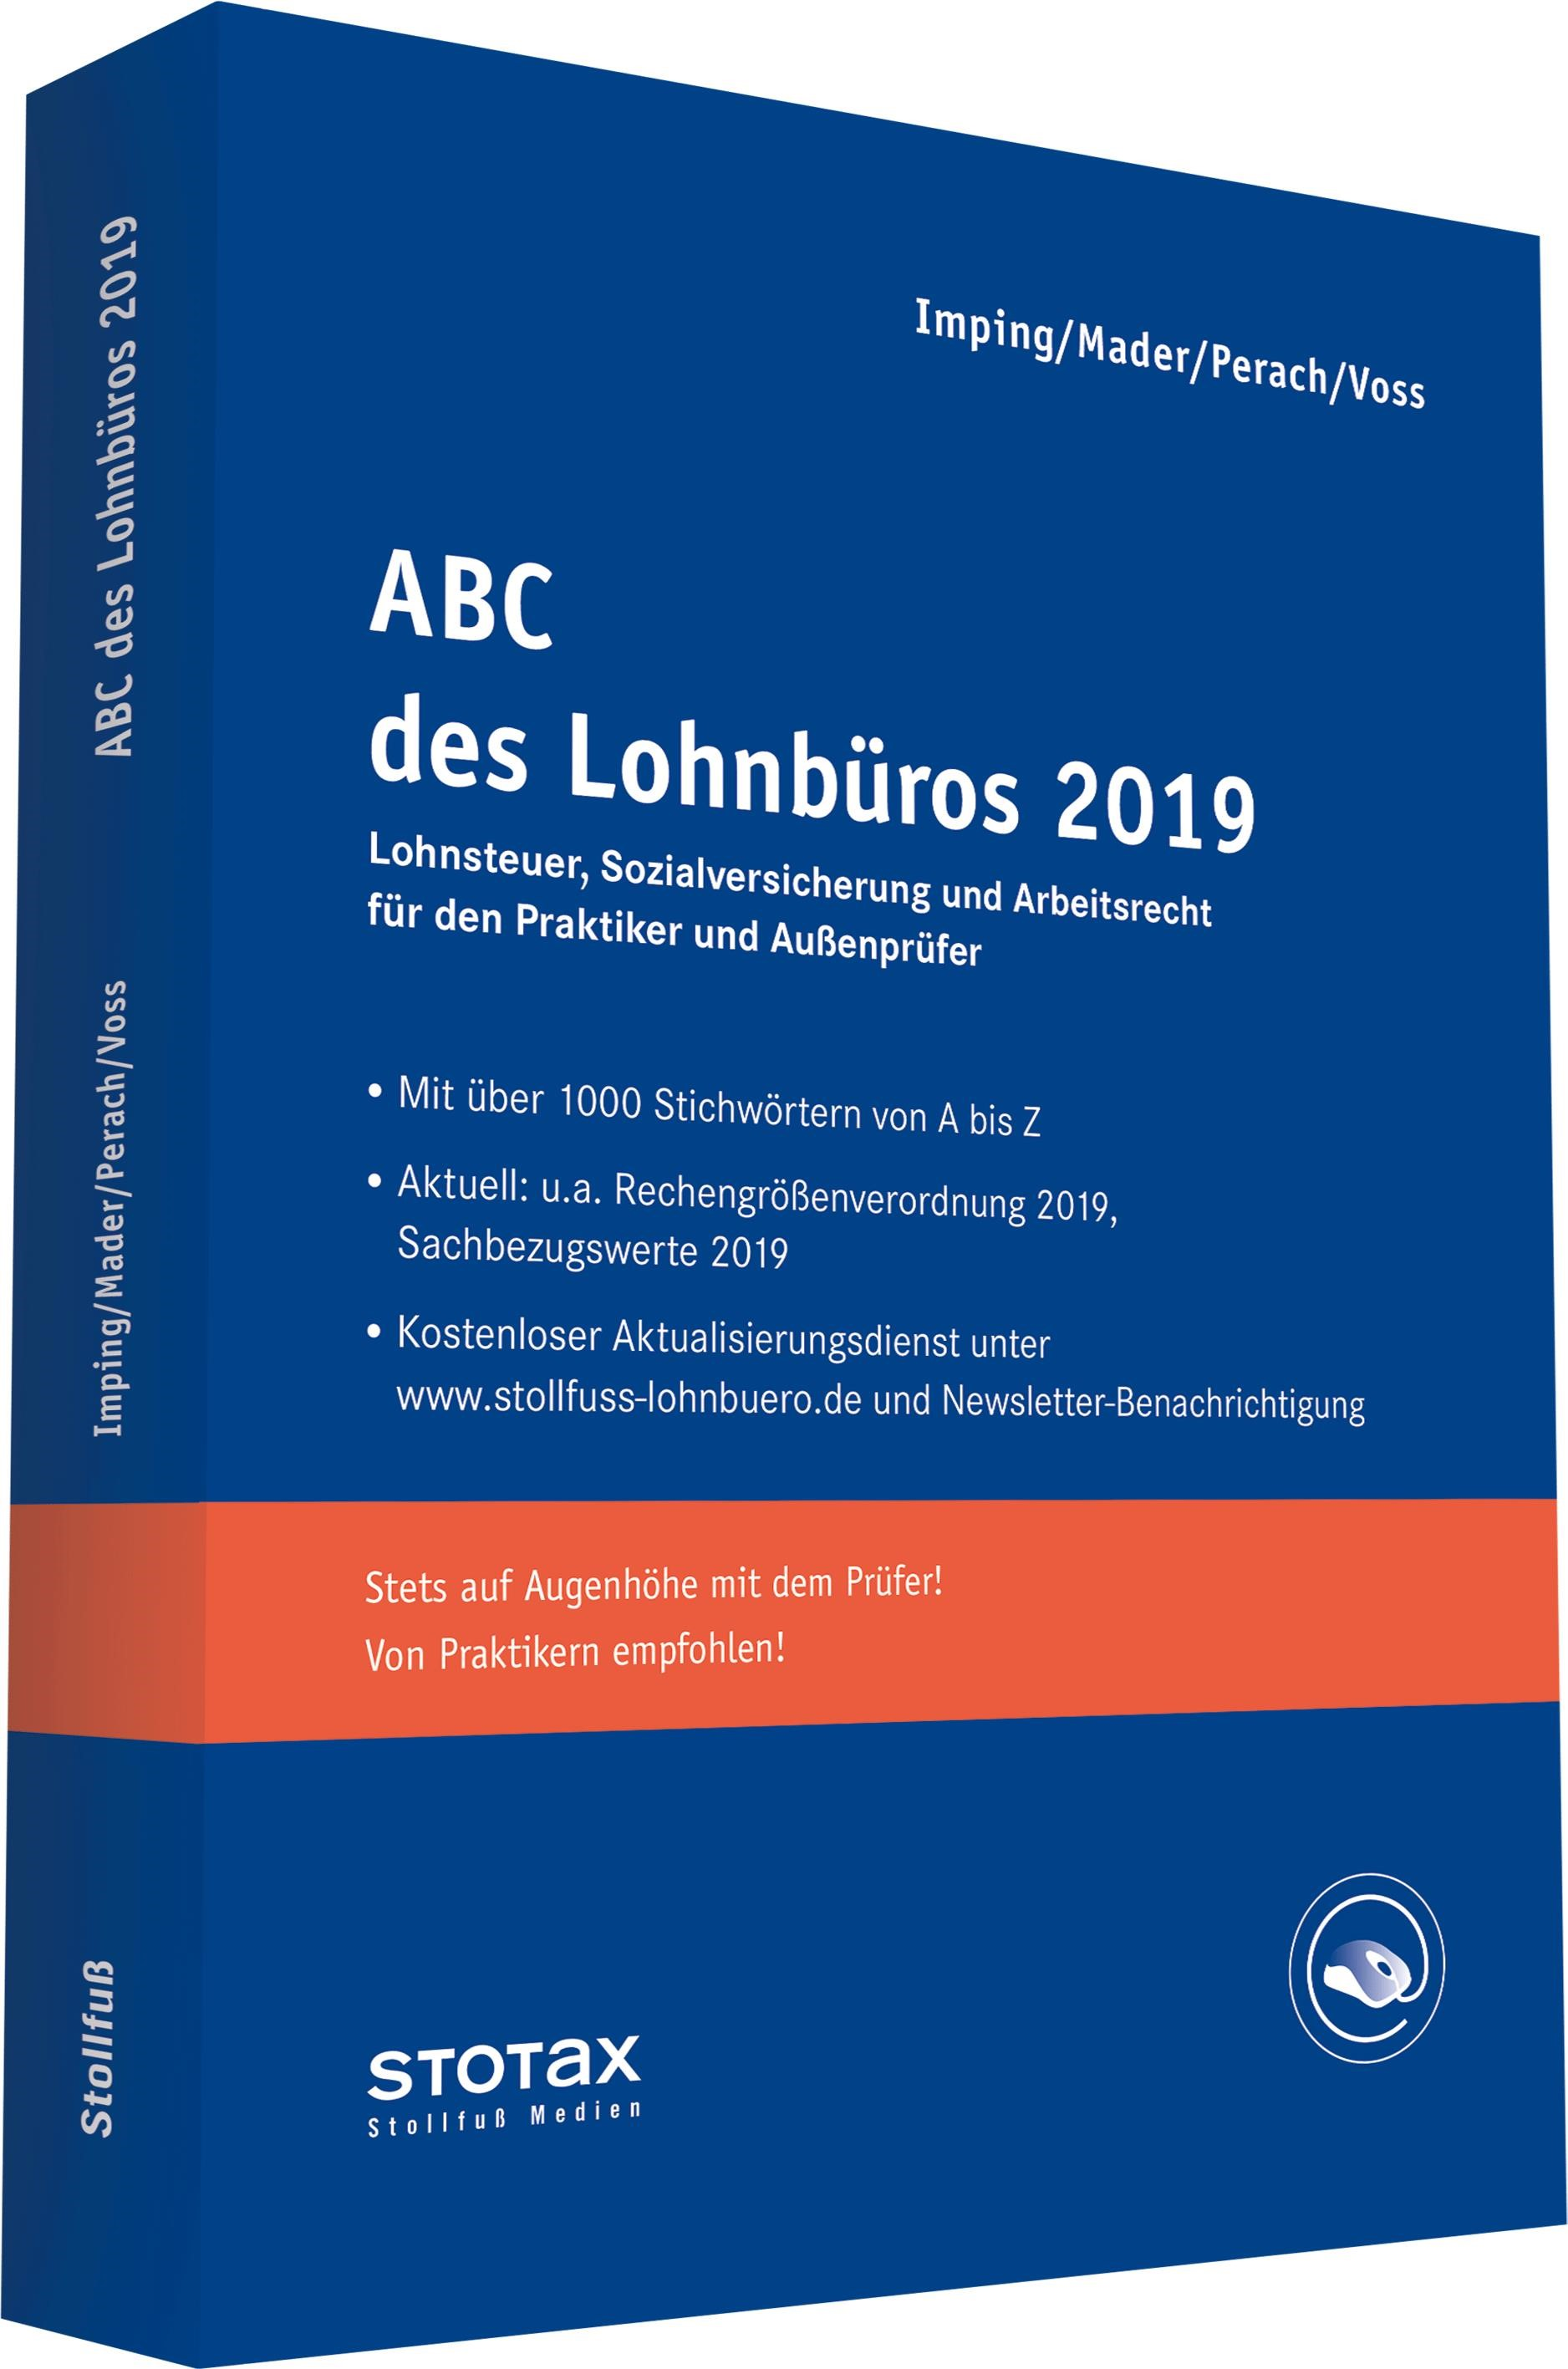 ABC des Lohnbüros 2019 | Mader / Perach / Voss / Imping, 2019 (Cover)